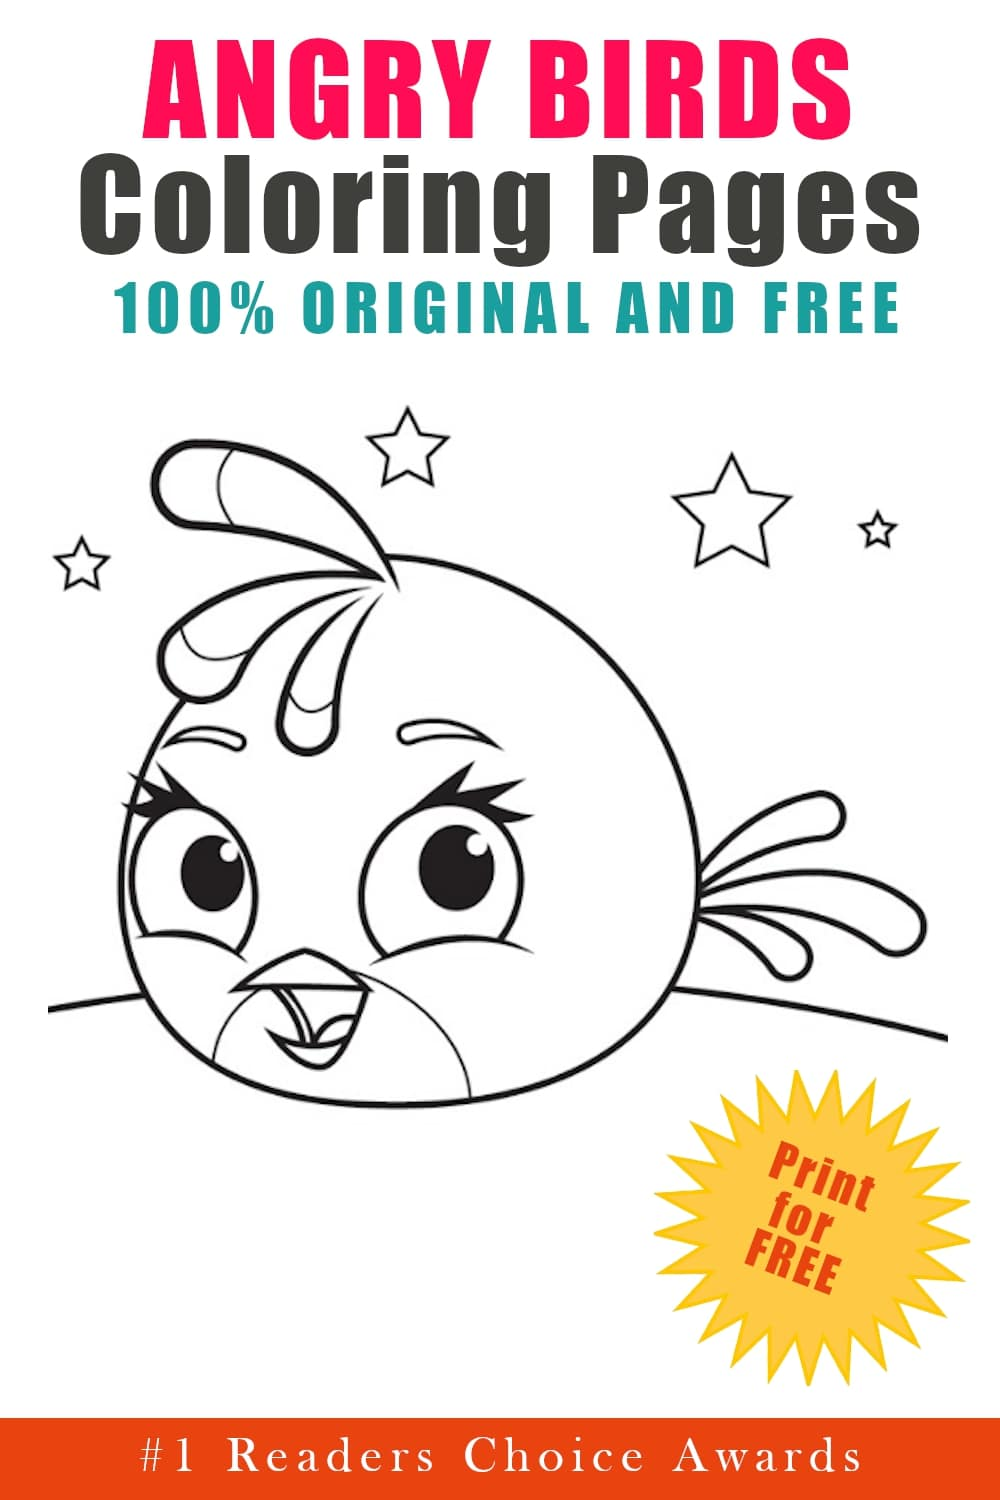 free original angry birds coloring pages